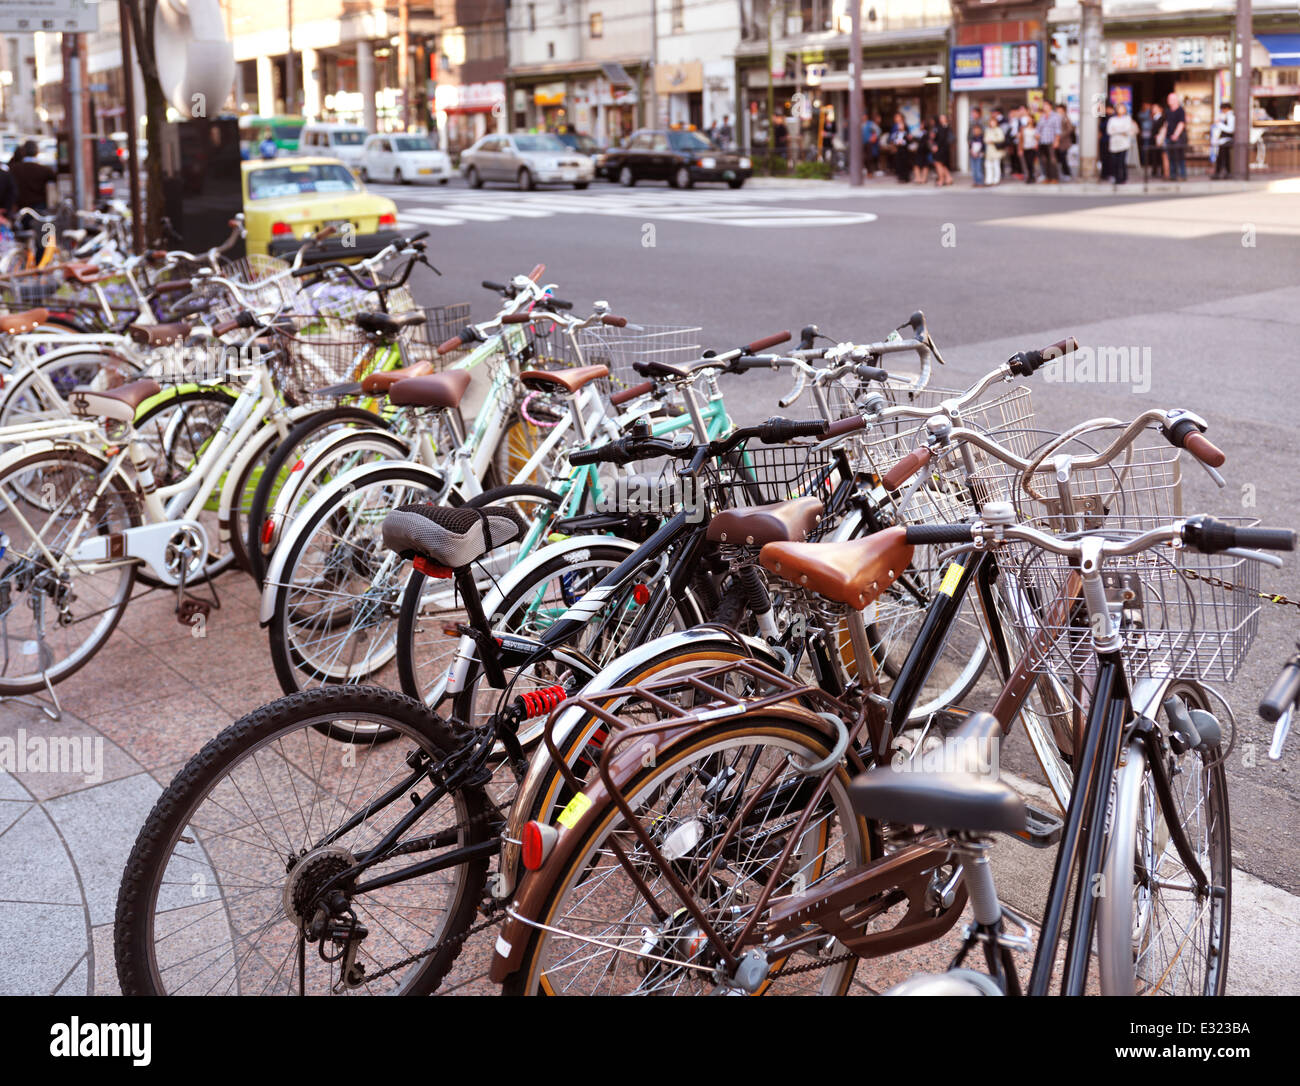 Bicycles parked on streets of Kyoto Japan 2014 - Stock Image